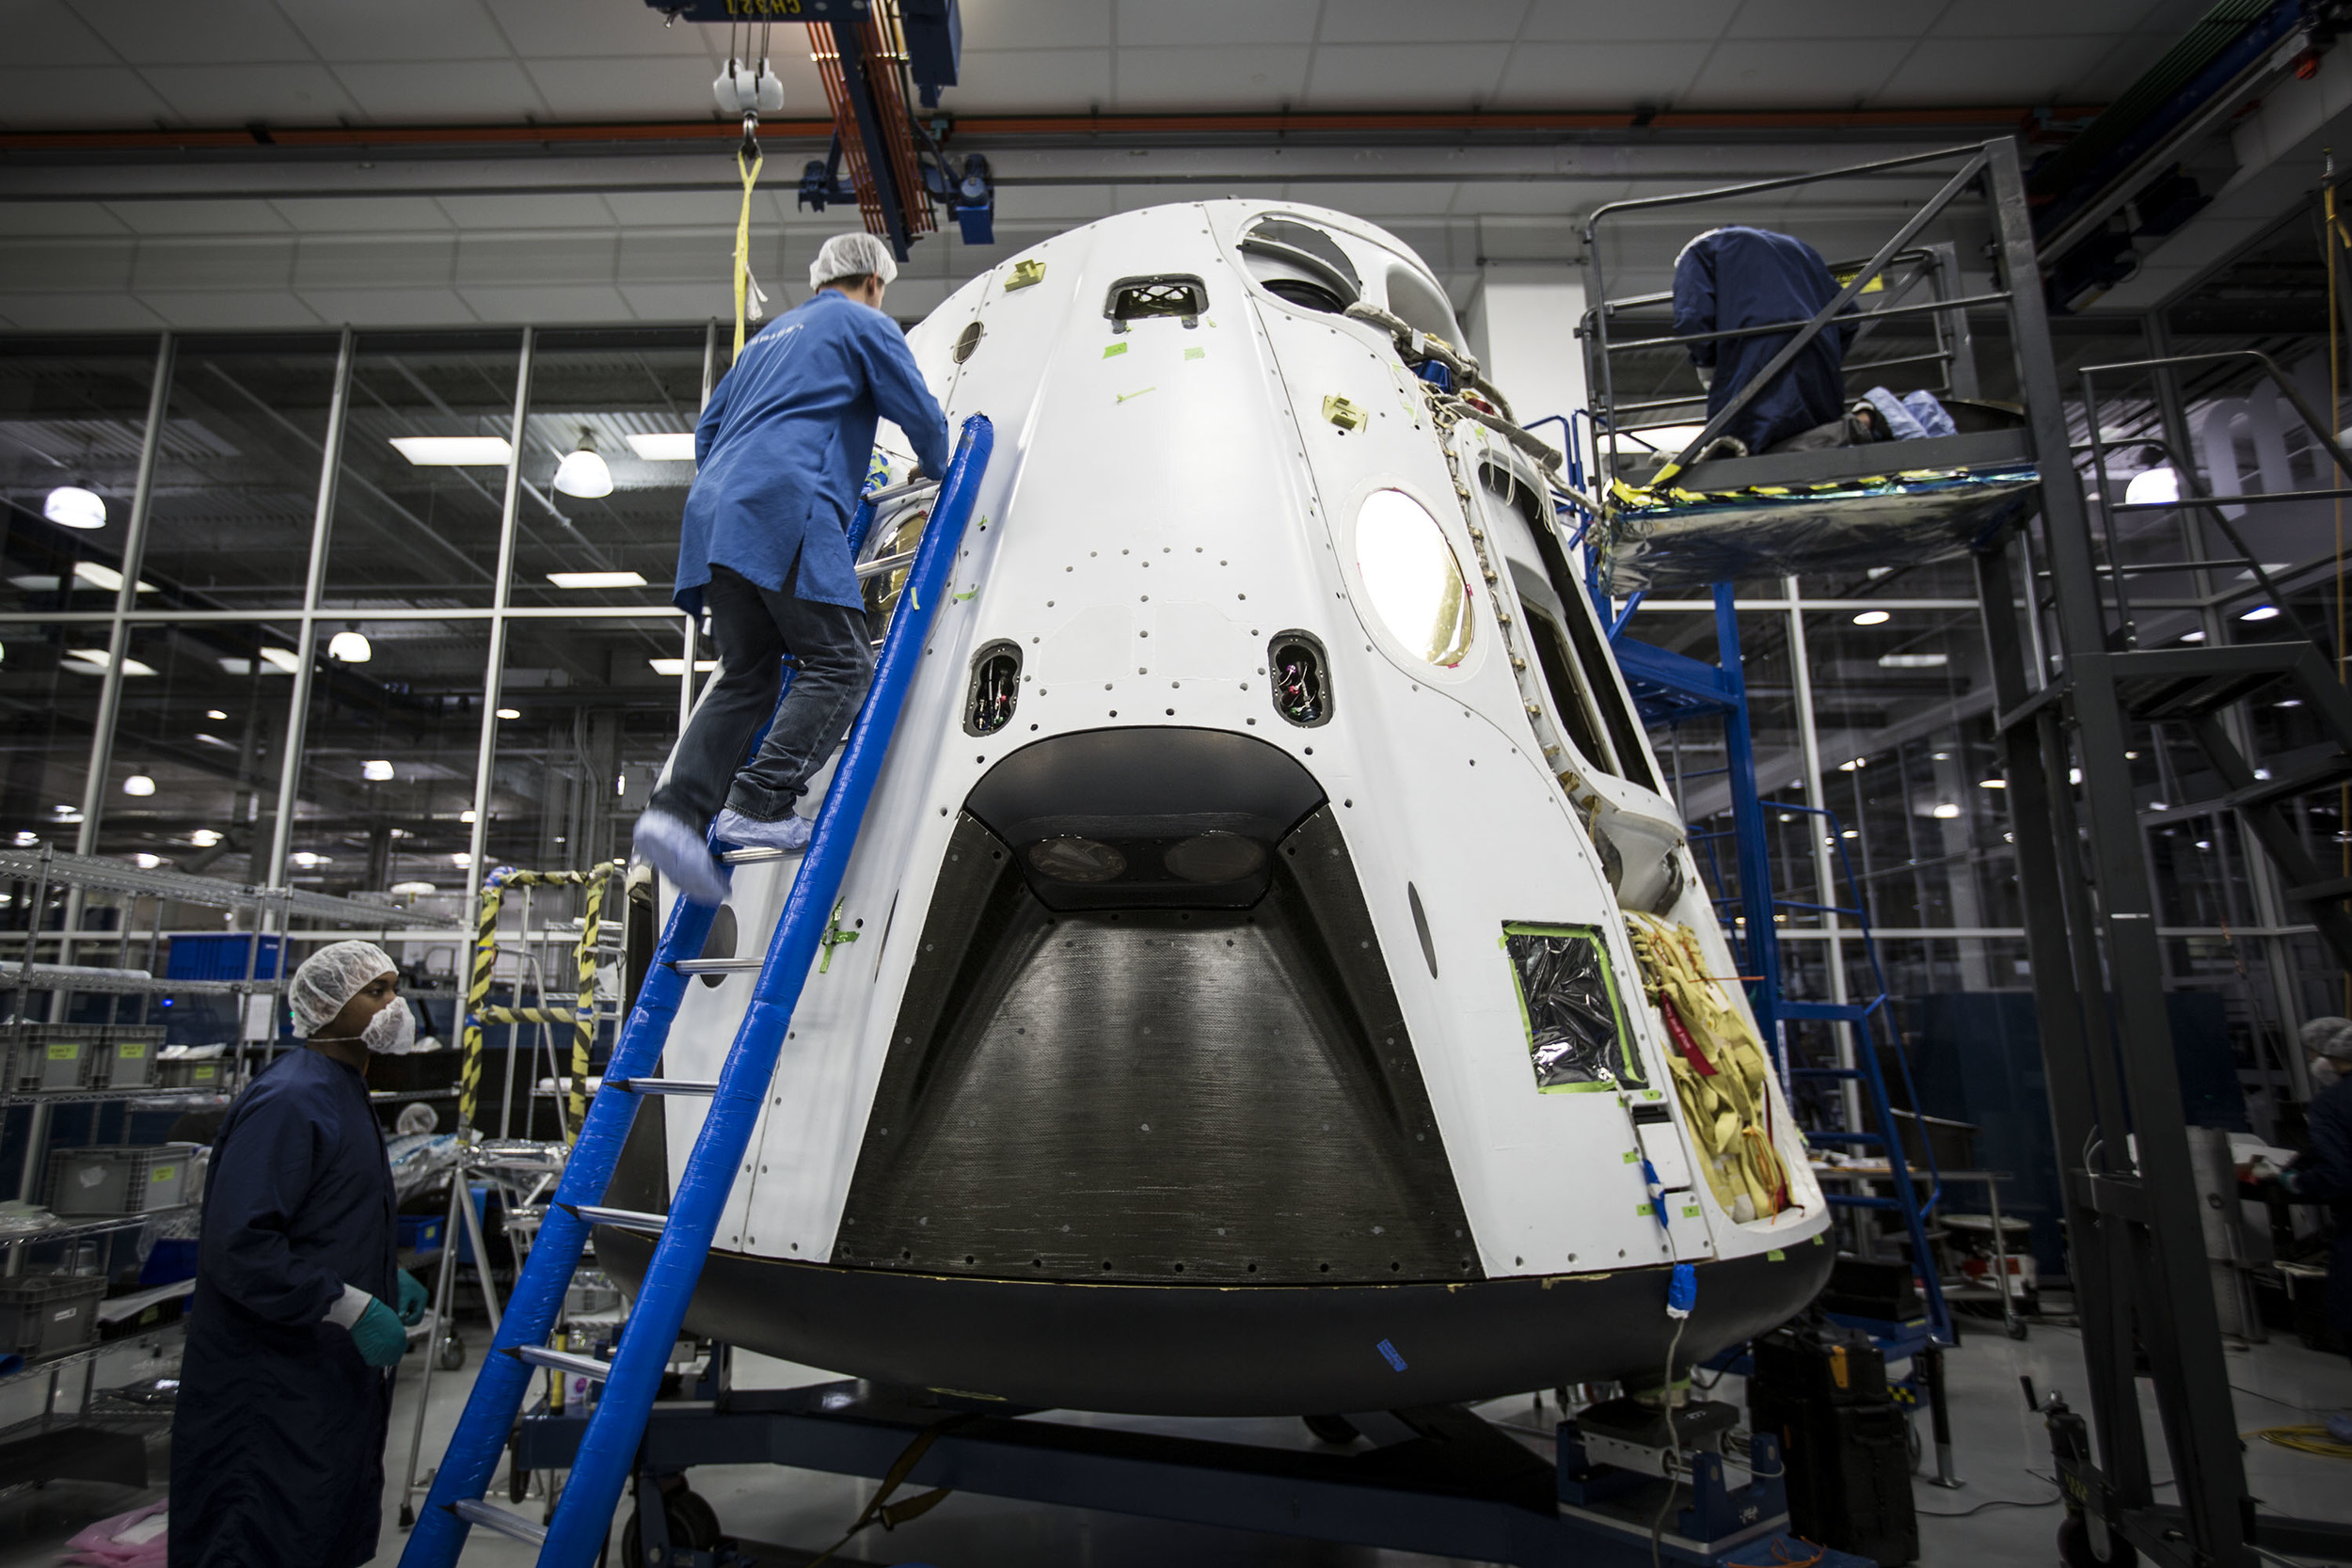 Engineers prepare a Crew Dragon for the Pad Abort test in 2015. Photo Credit: SpaceX